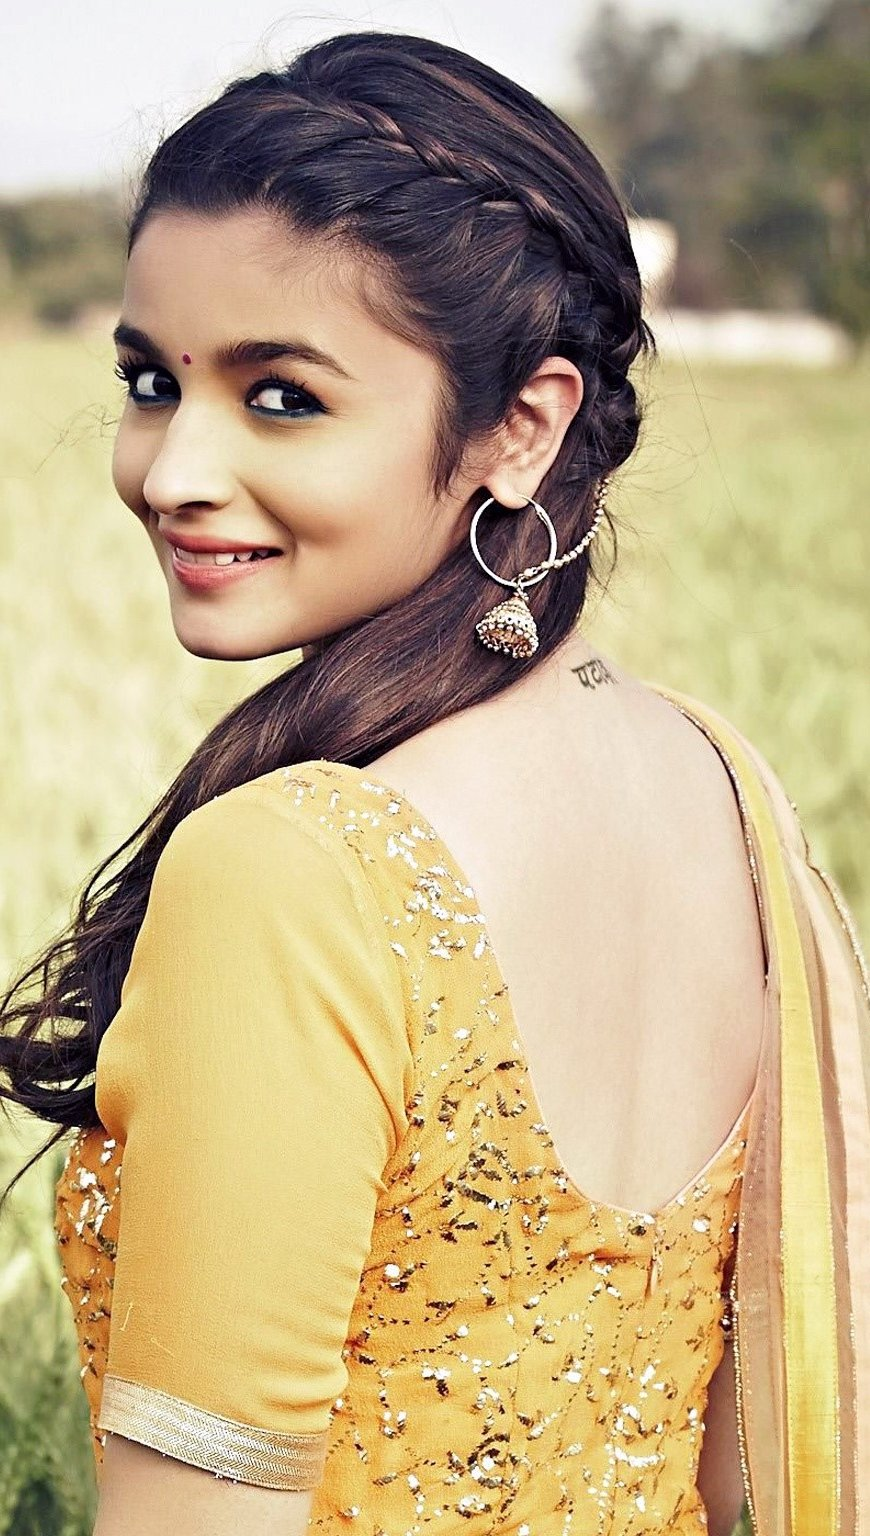 Wallpaper Alia Bhatt in Humpty Sharma Ki Dulhania Vertical